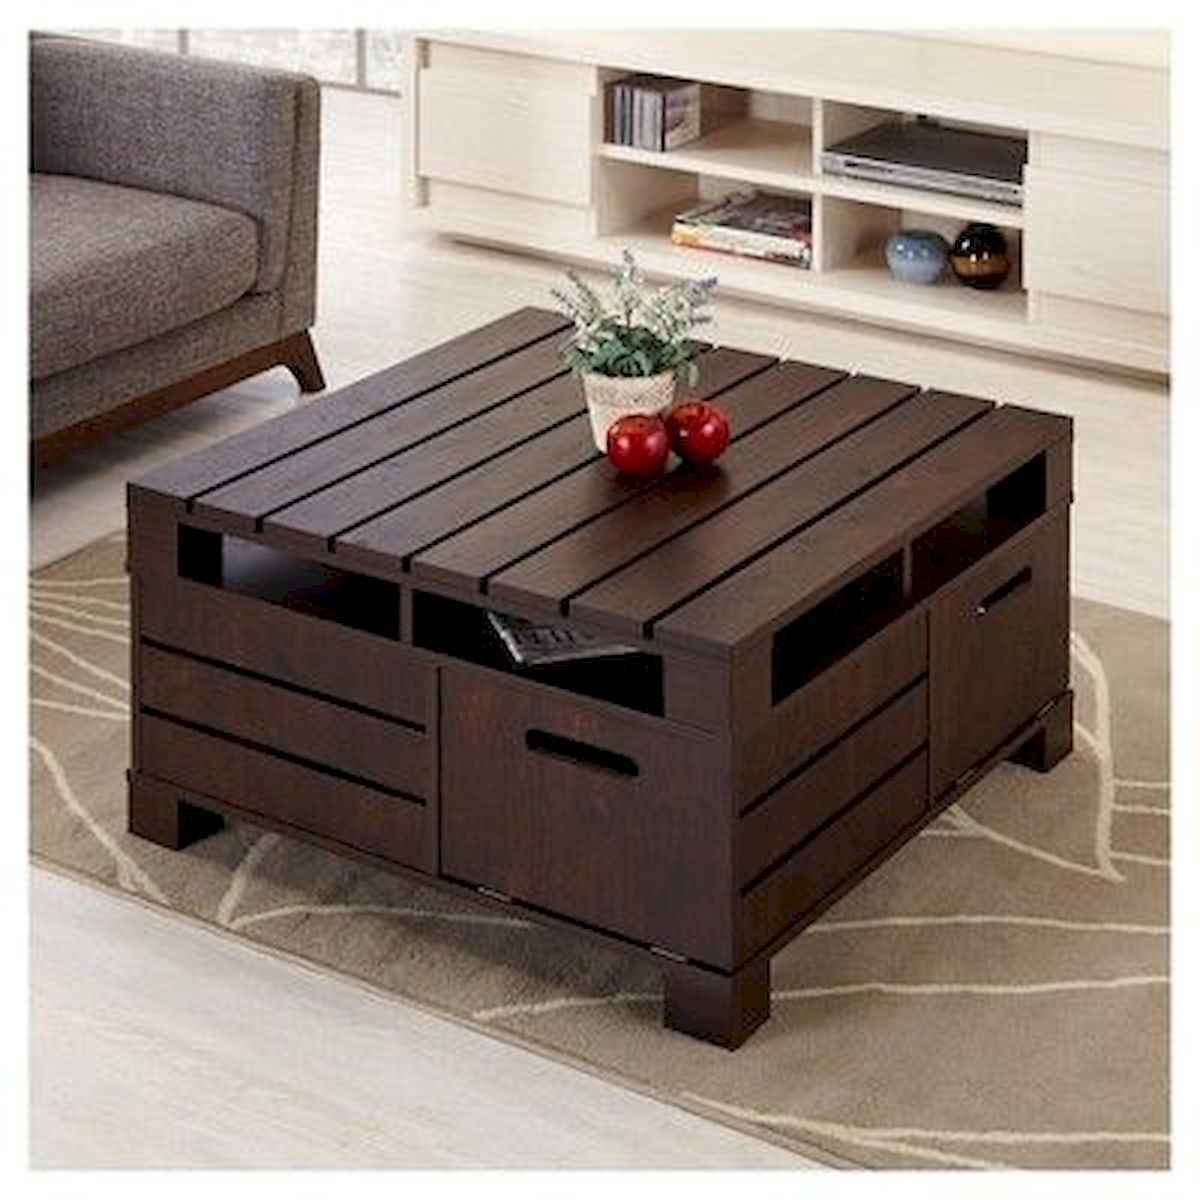 70 Suprising DIY Projects Mini Pallet Coffee Table Design Ideas (13)